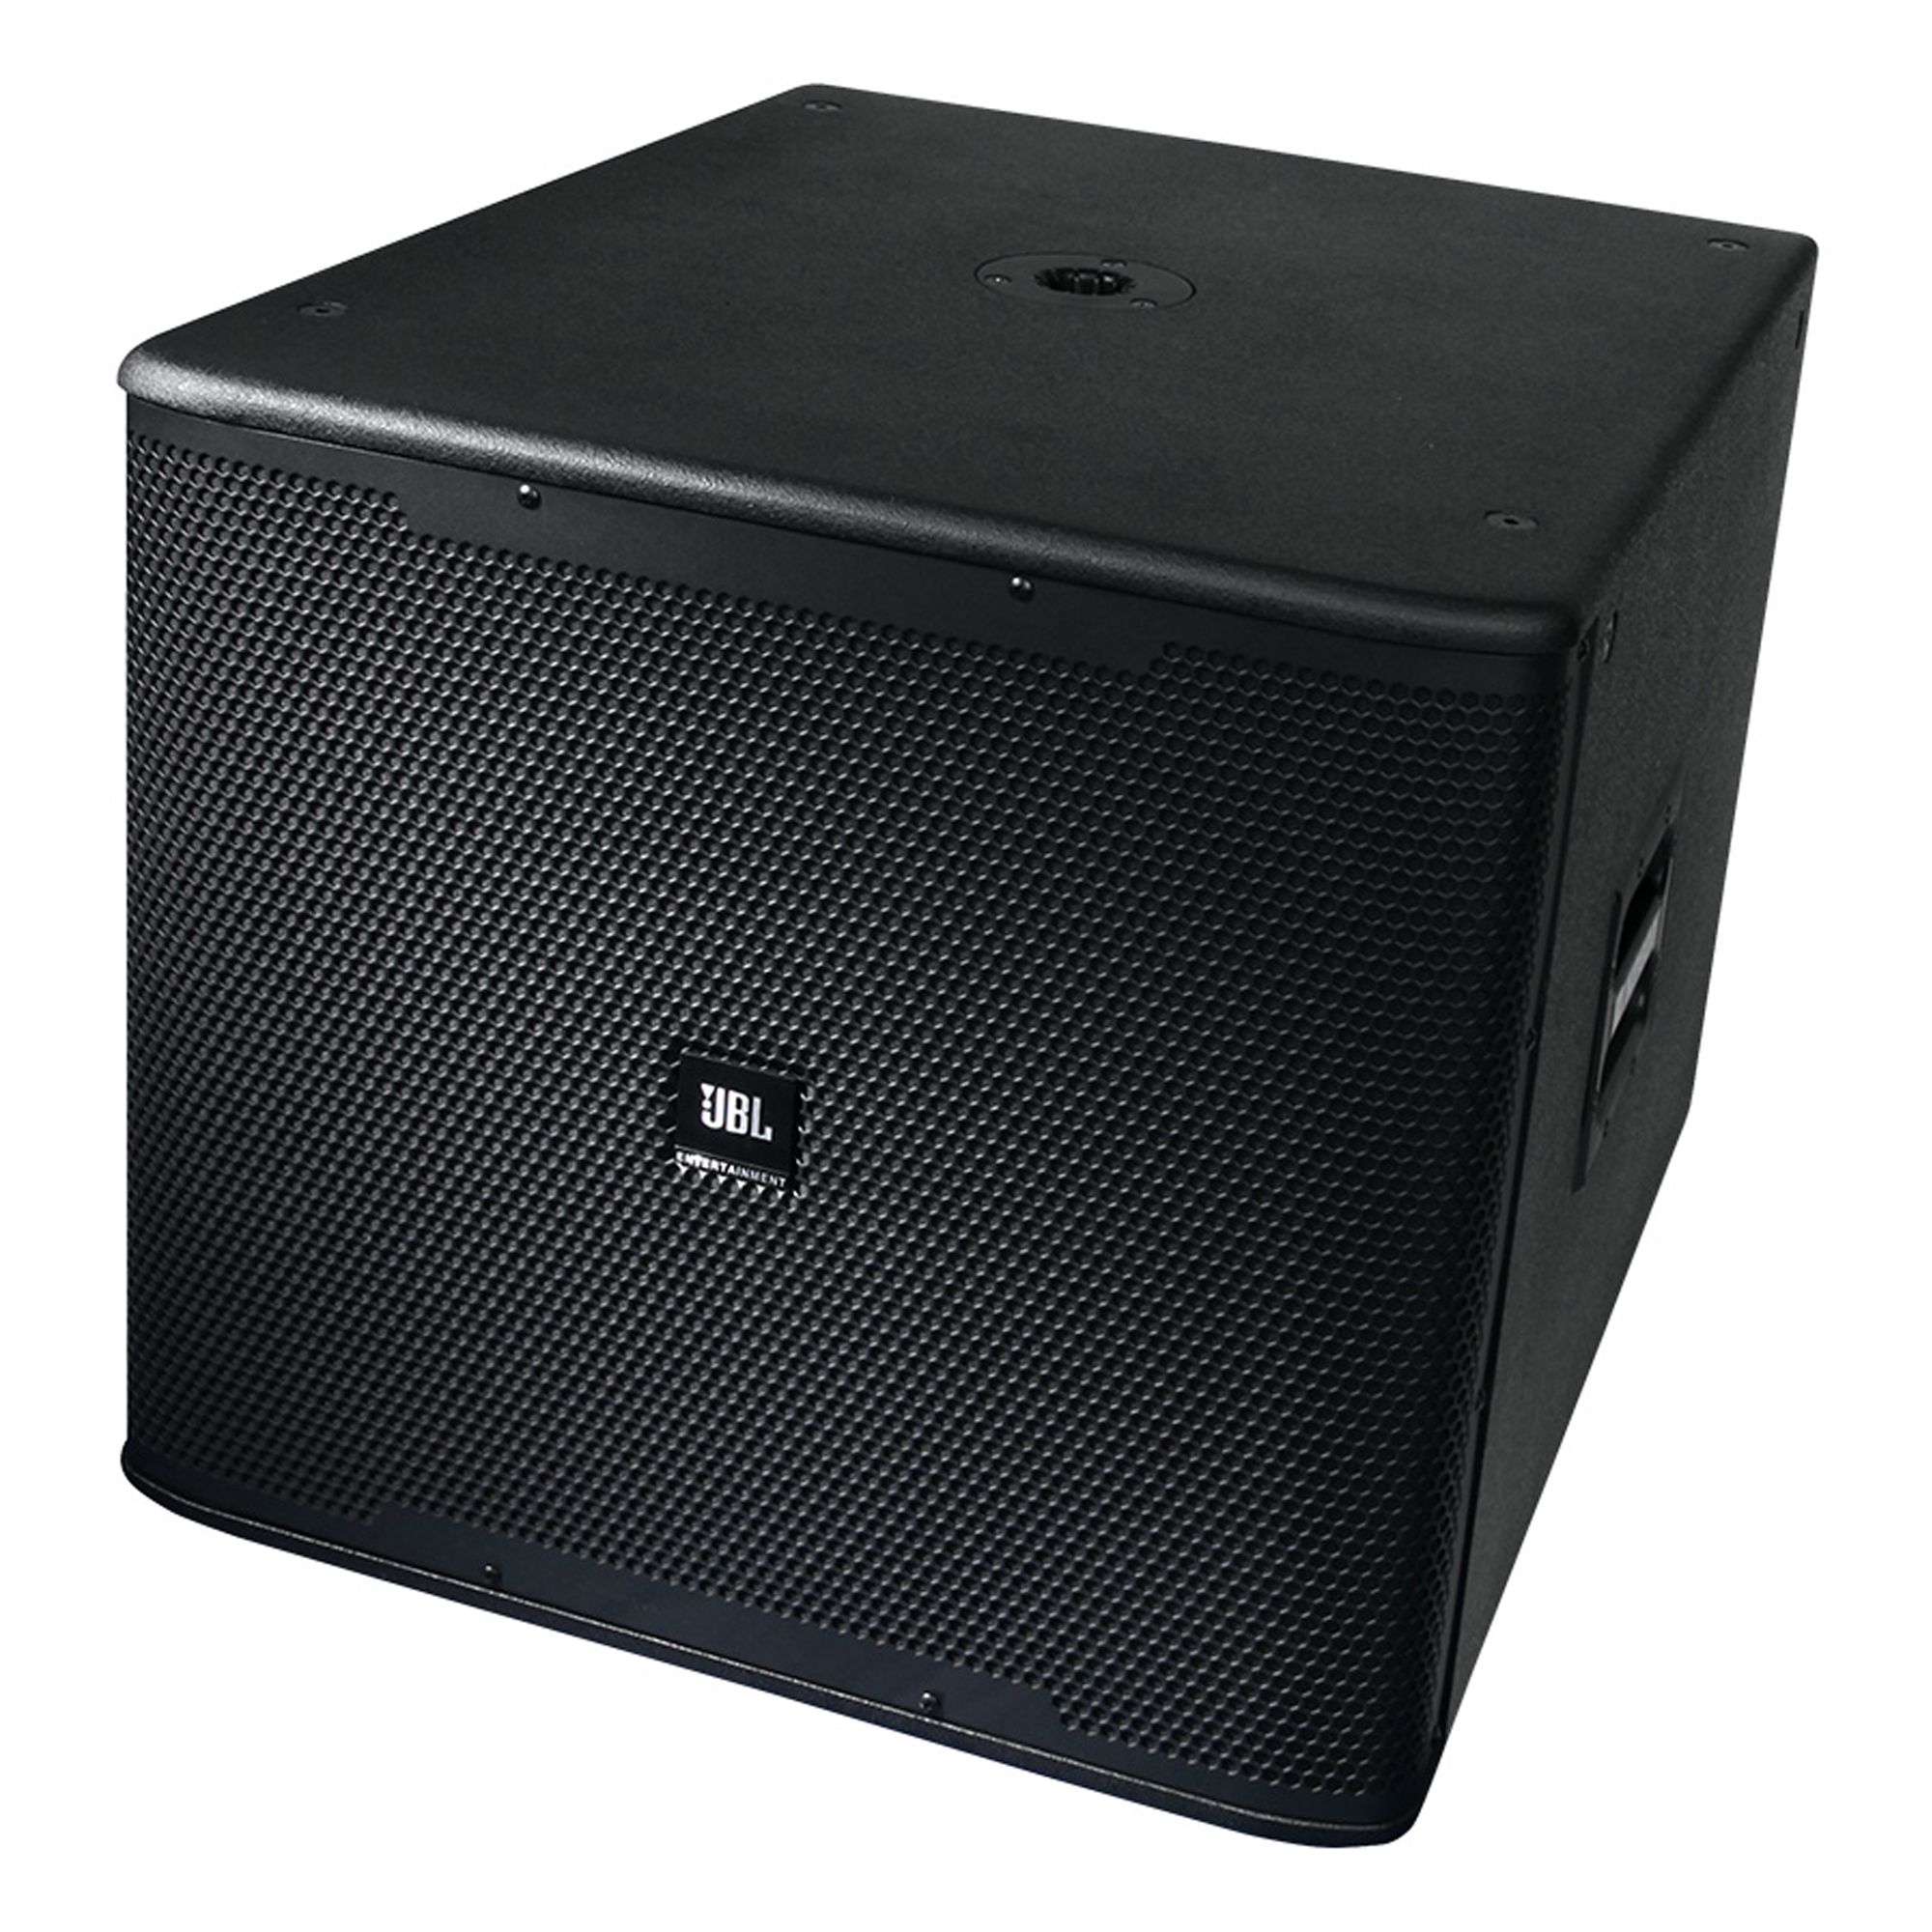 18 Inch High-Power Passive Subwoofer